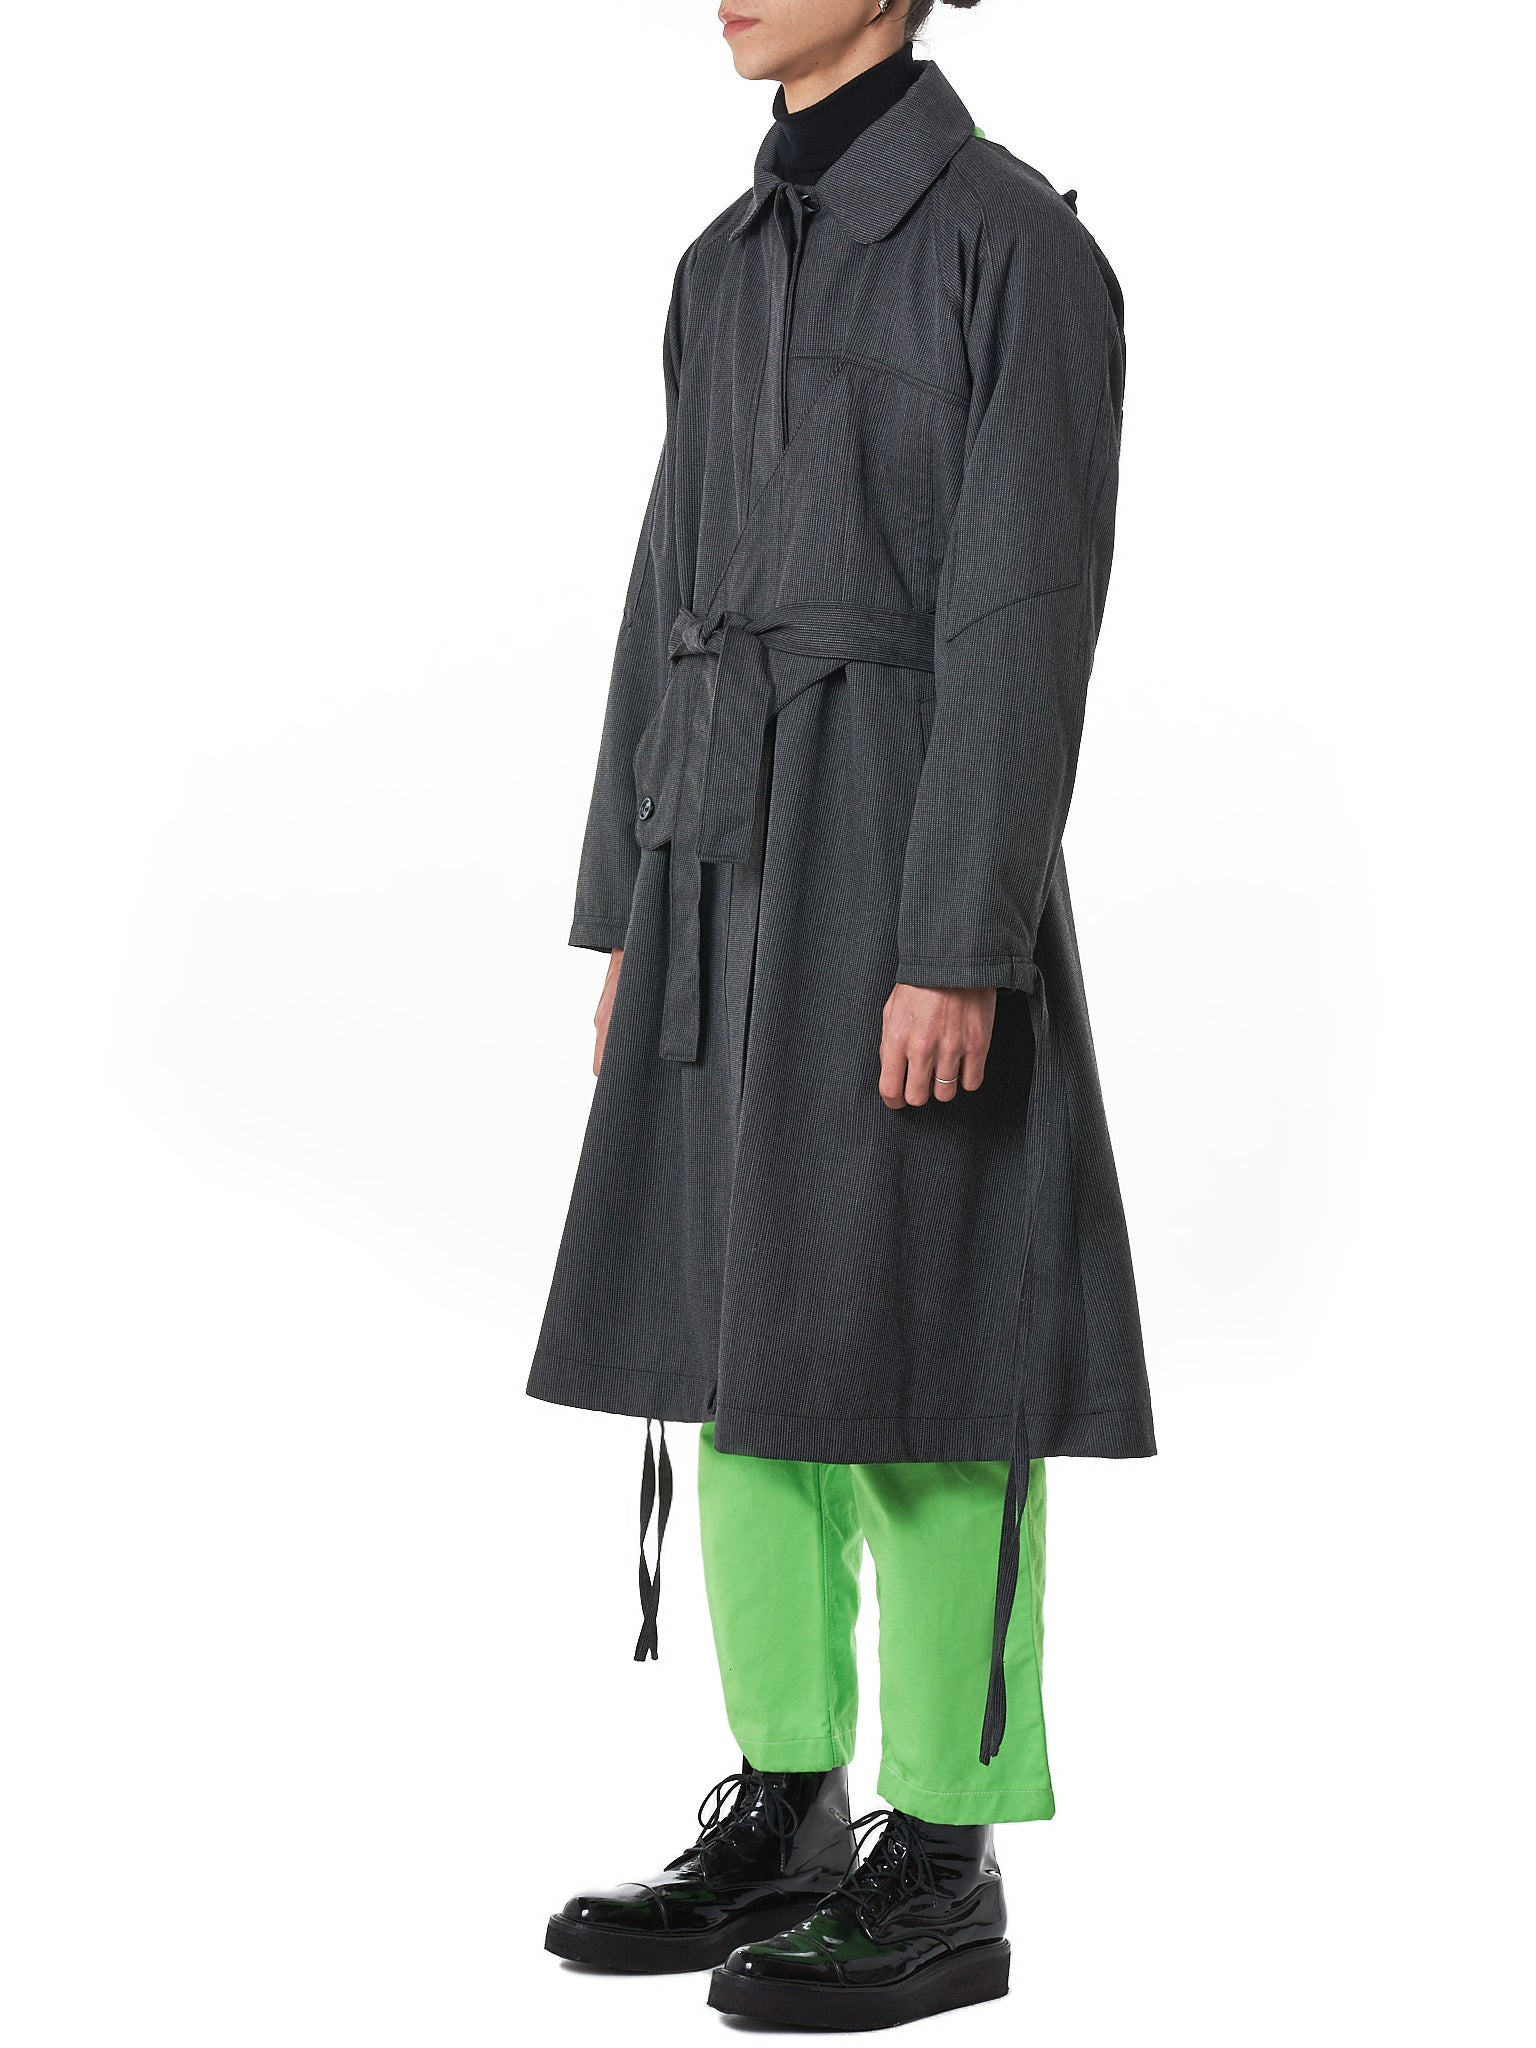 Sanchez-Kane Trench Coat - Hlorenzo Side